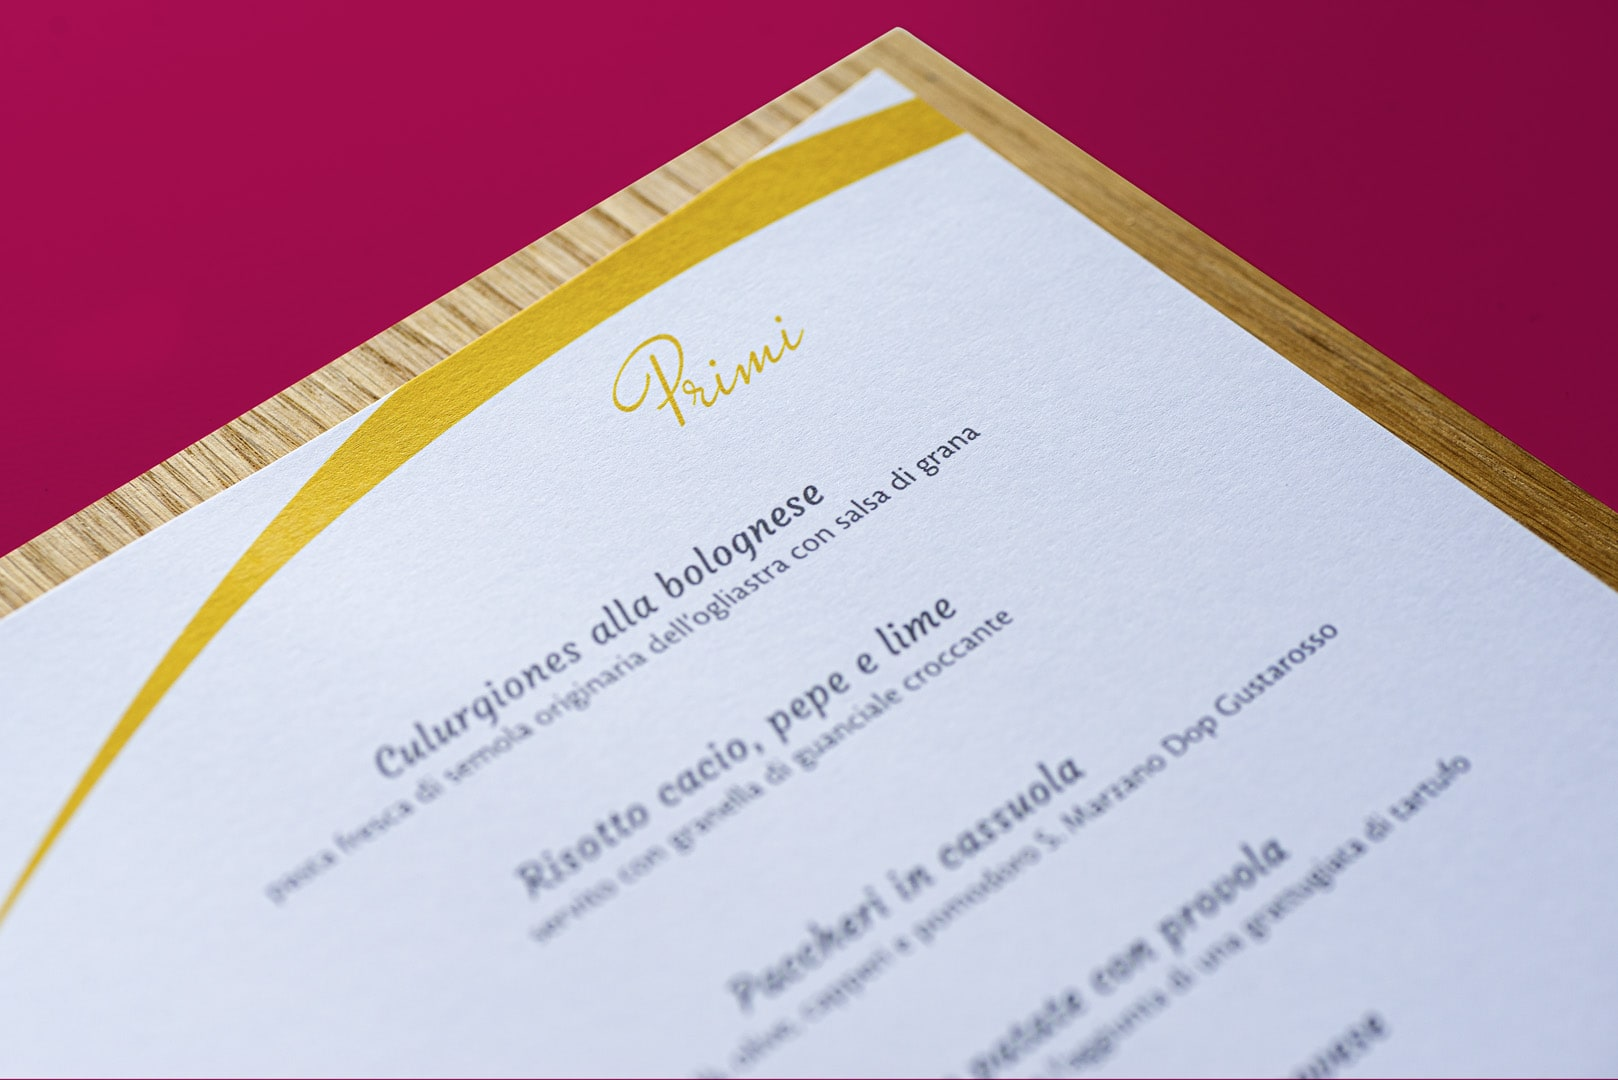 Panciallegra Restaurant - Menu design by DelfiAdv.it